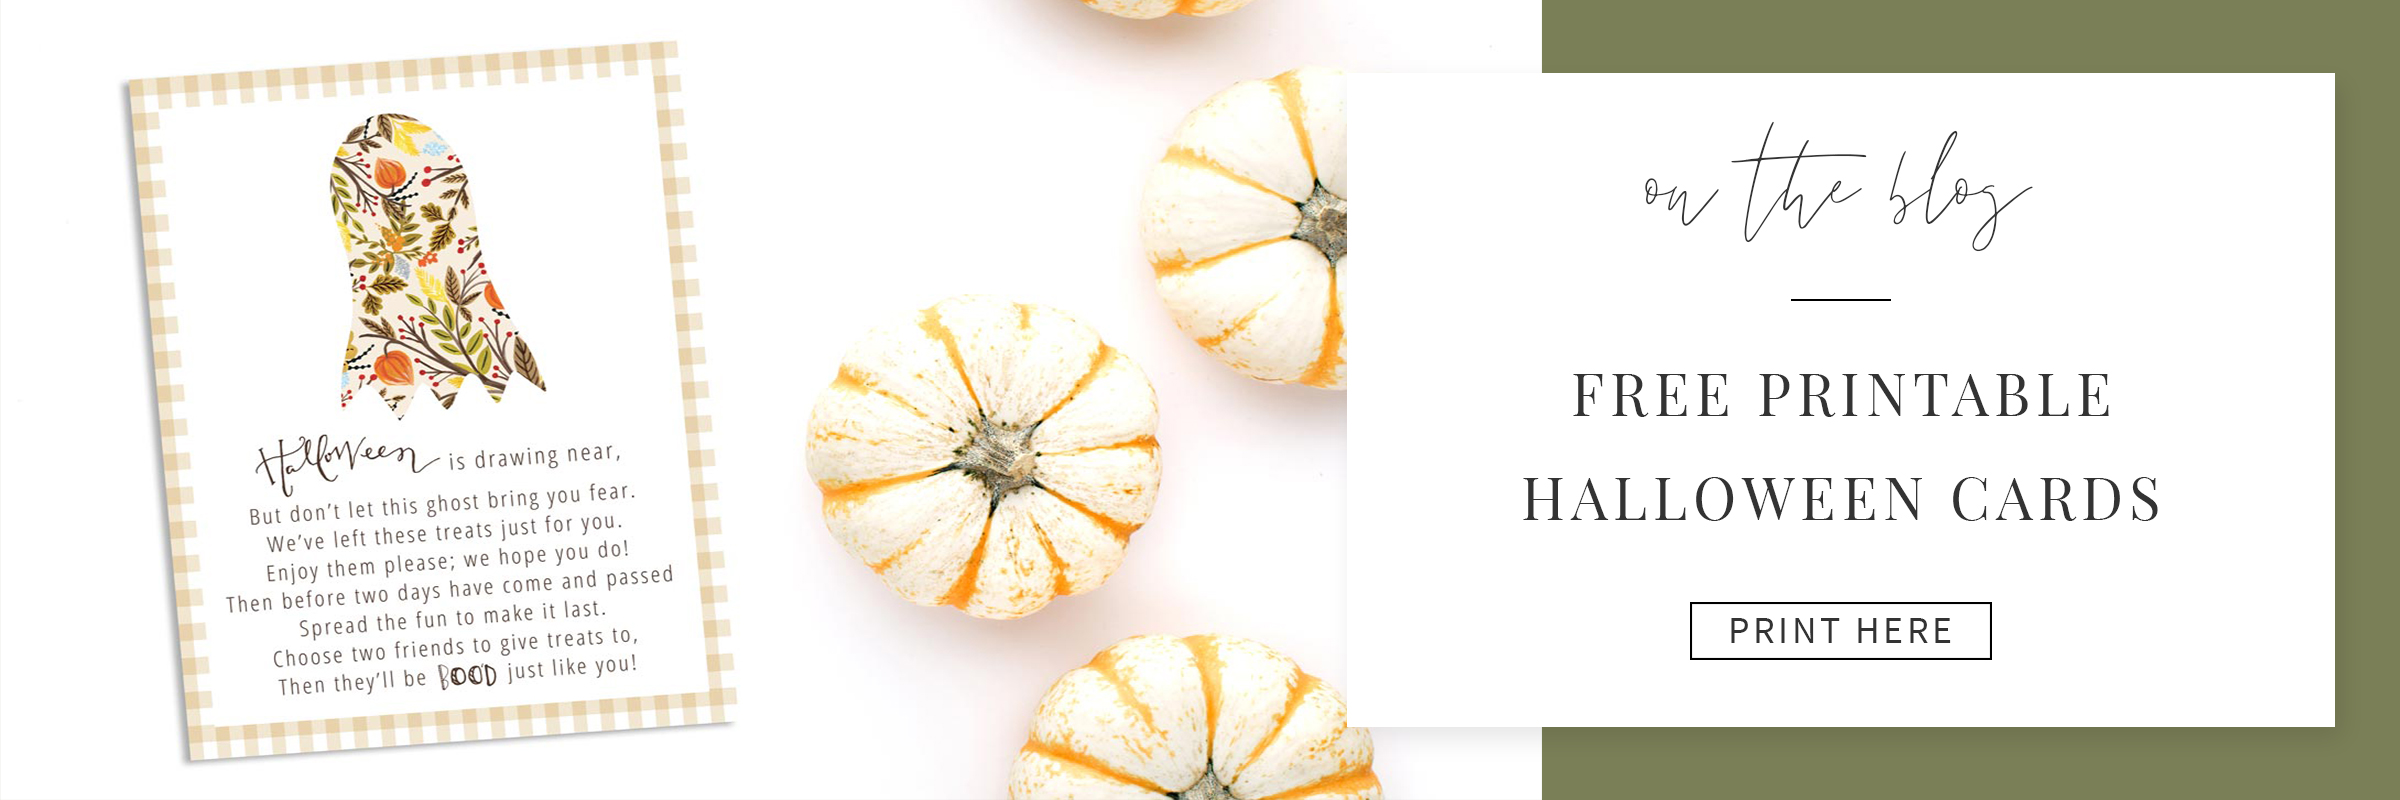 Halloween-Printable-Slider-2